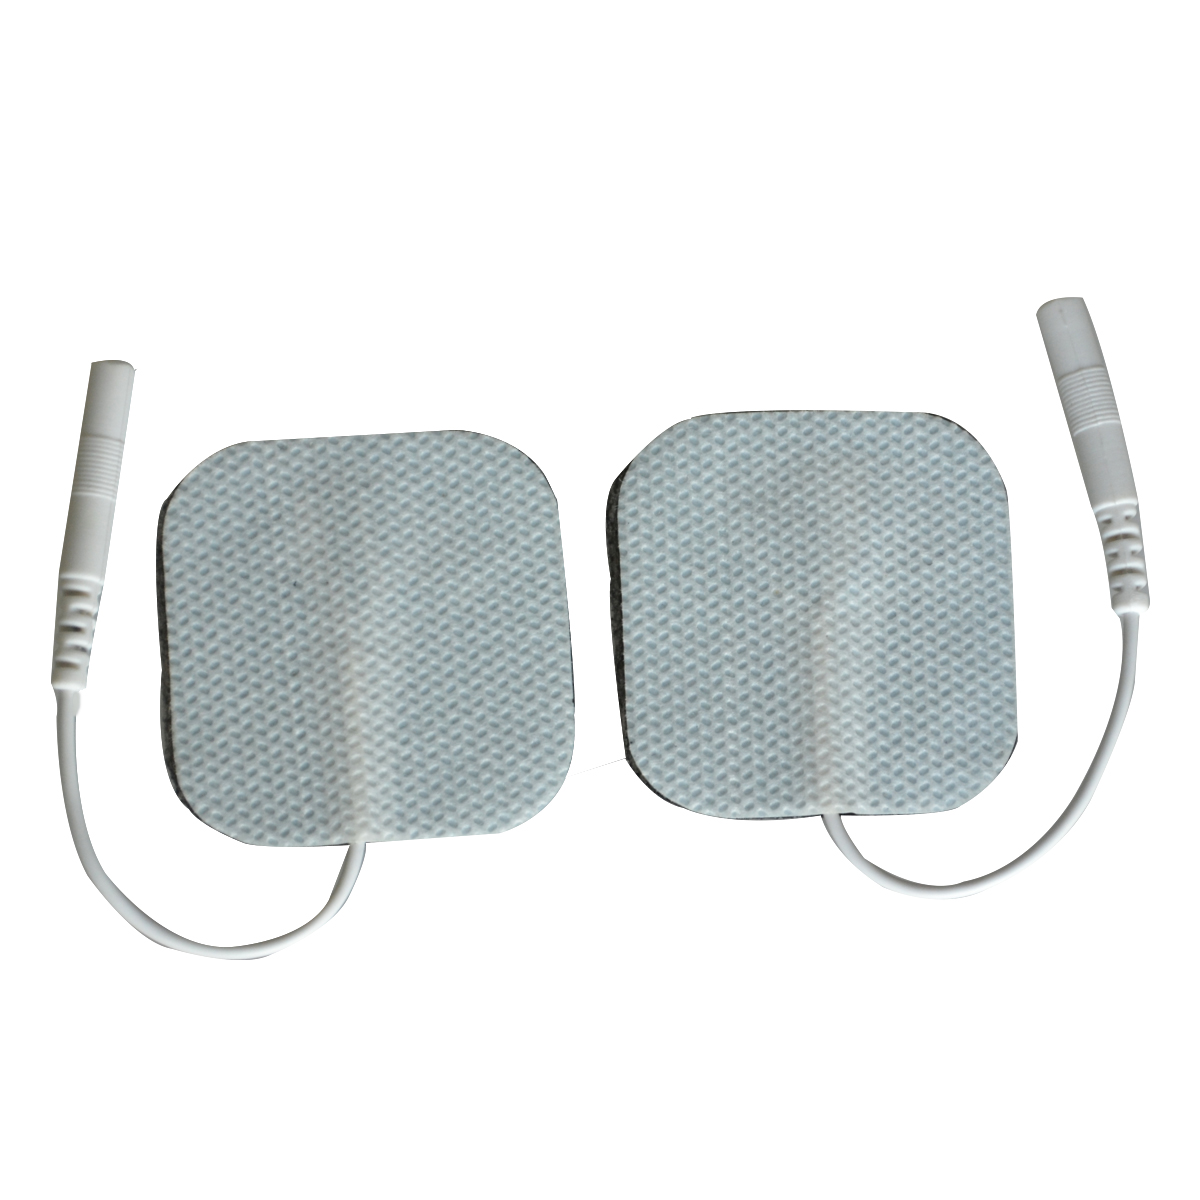 200Pairs/Lot Electrode Nerve Stimulator Pads Self-adhesive For Digital Physiotherapy Machine Massager 4*4cm With Wire Cable цена